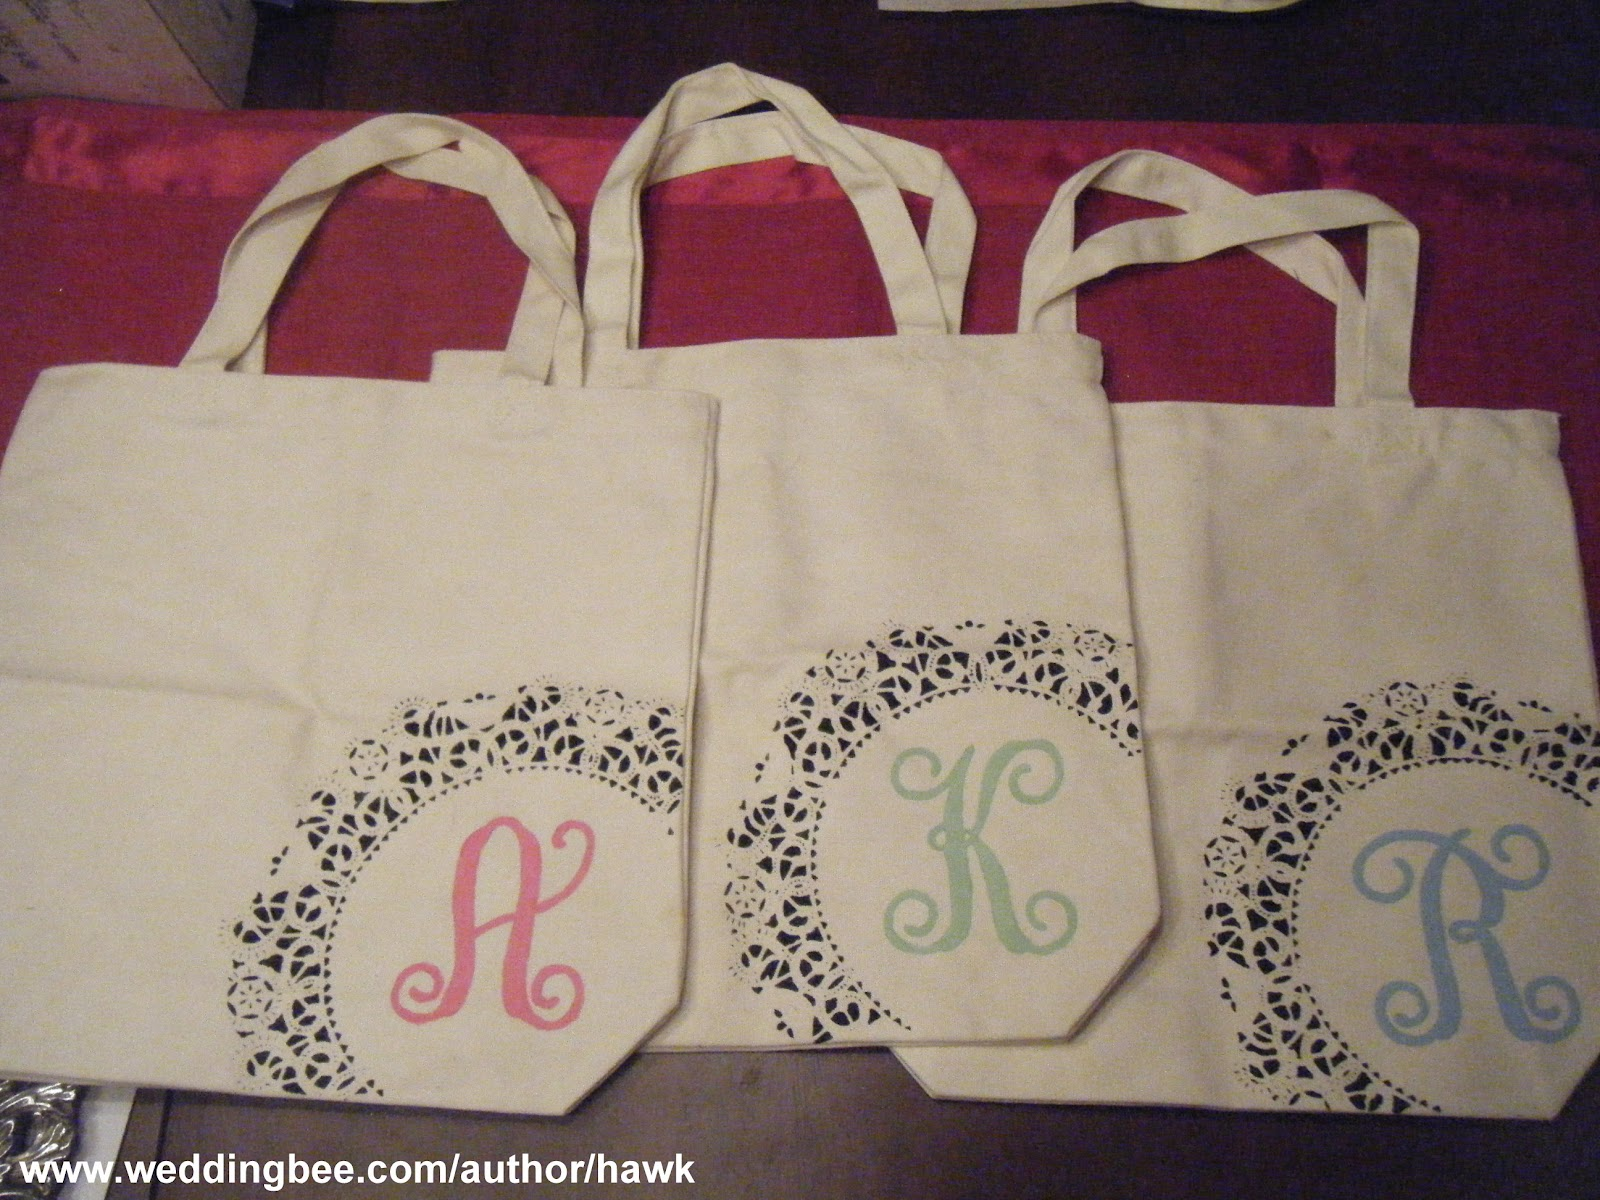 Virginia Wedding Gift Bag Ideas : Gifting the Bridesmaids: DIY Monogram Totes - Weddingbee